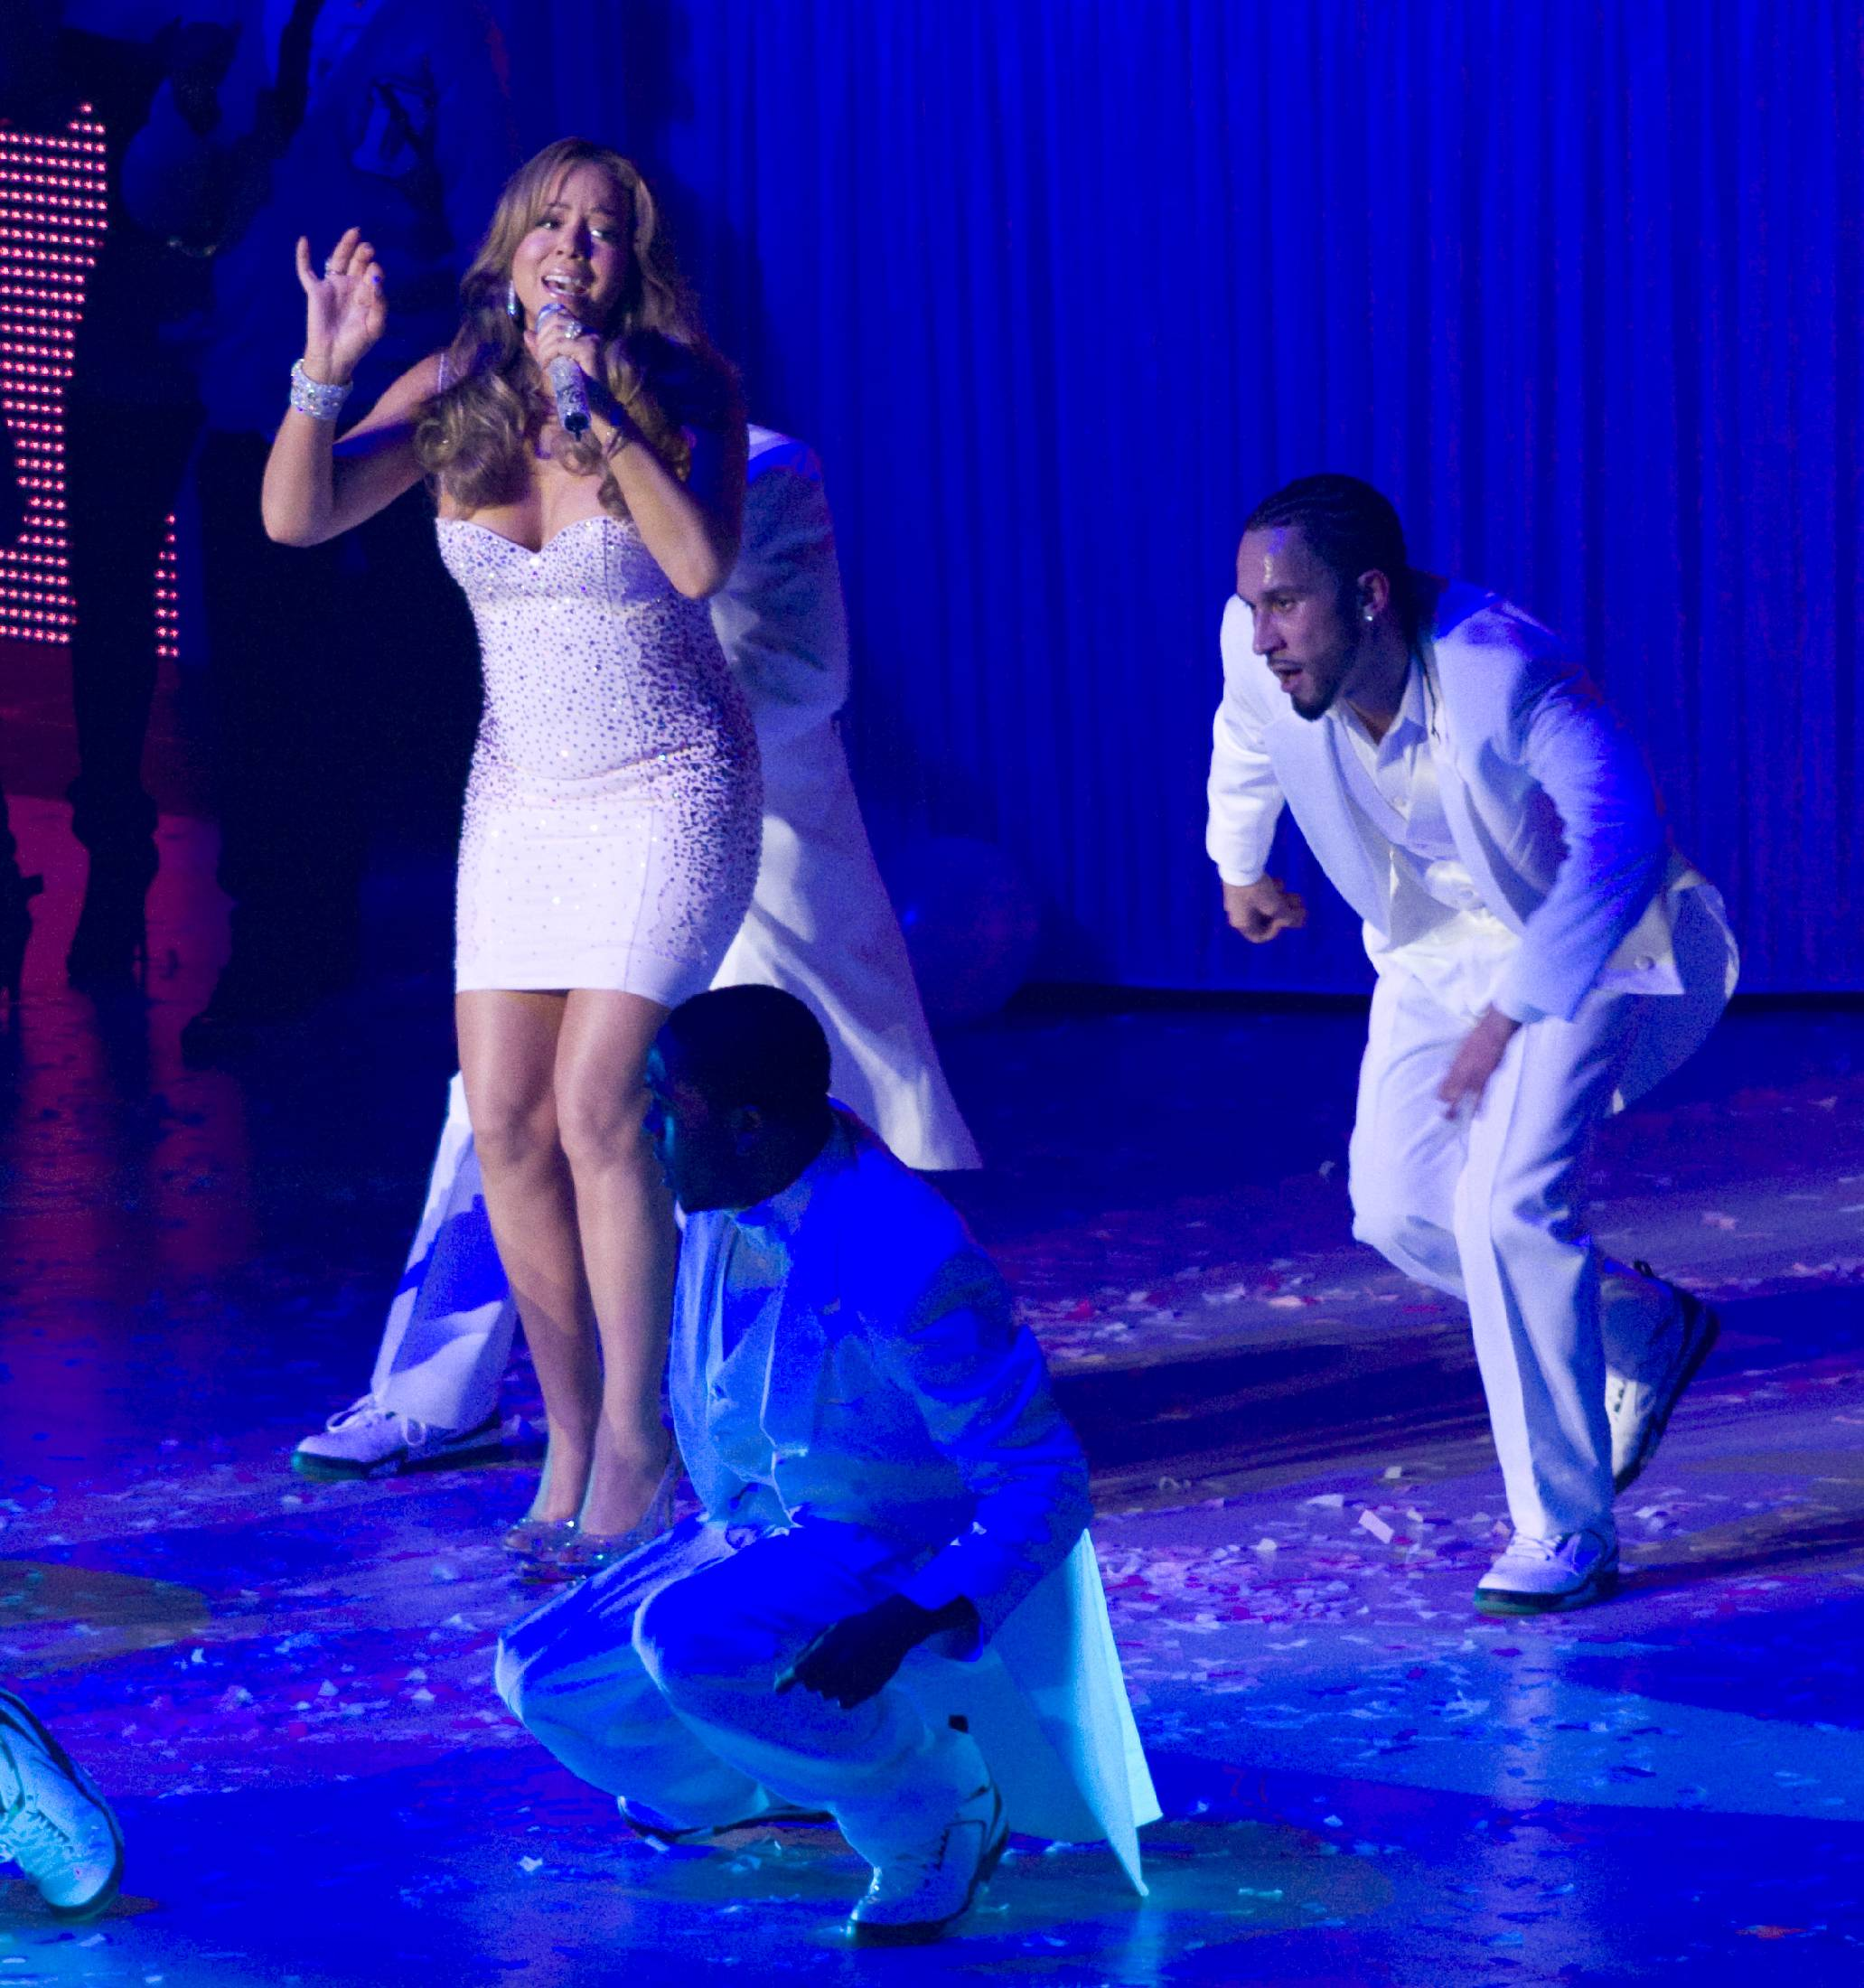 53694_Mariah_Carey_performs_at_Madison_Square_Garden_in_New_York_City-7_122_386lo.jpg